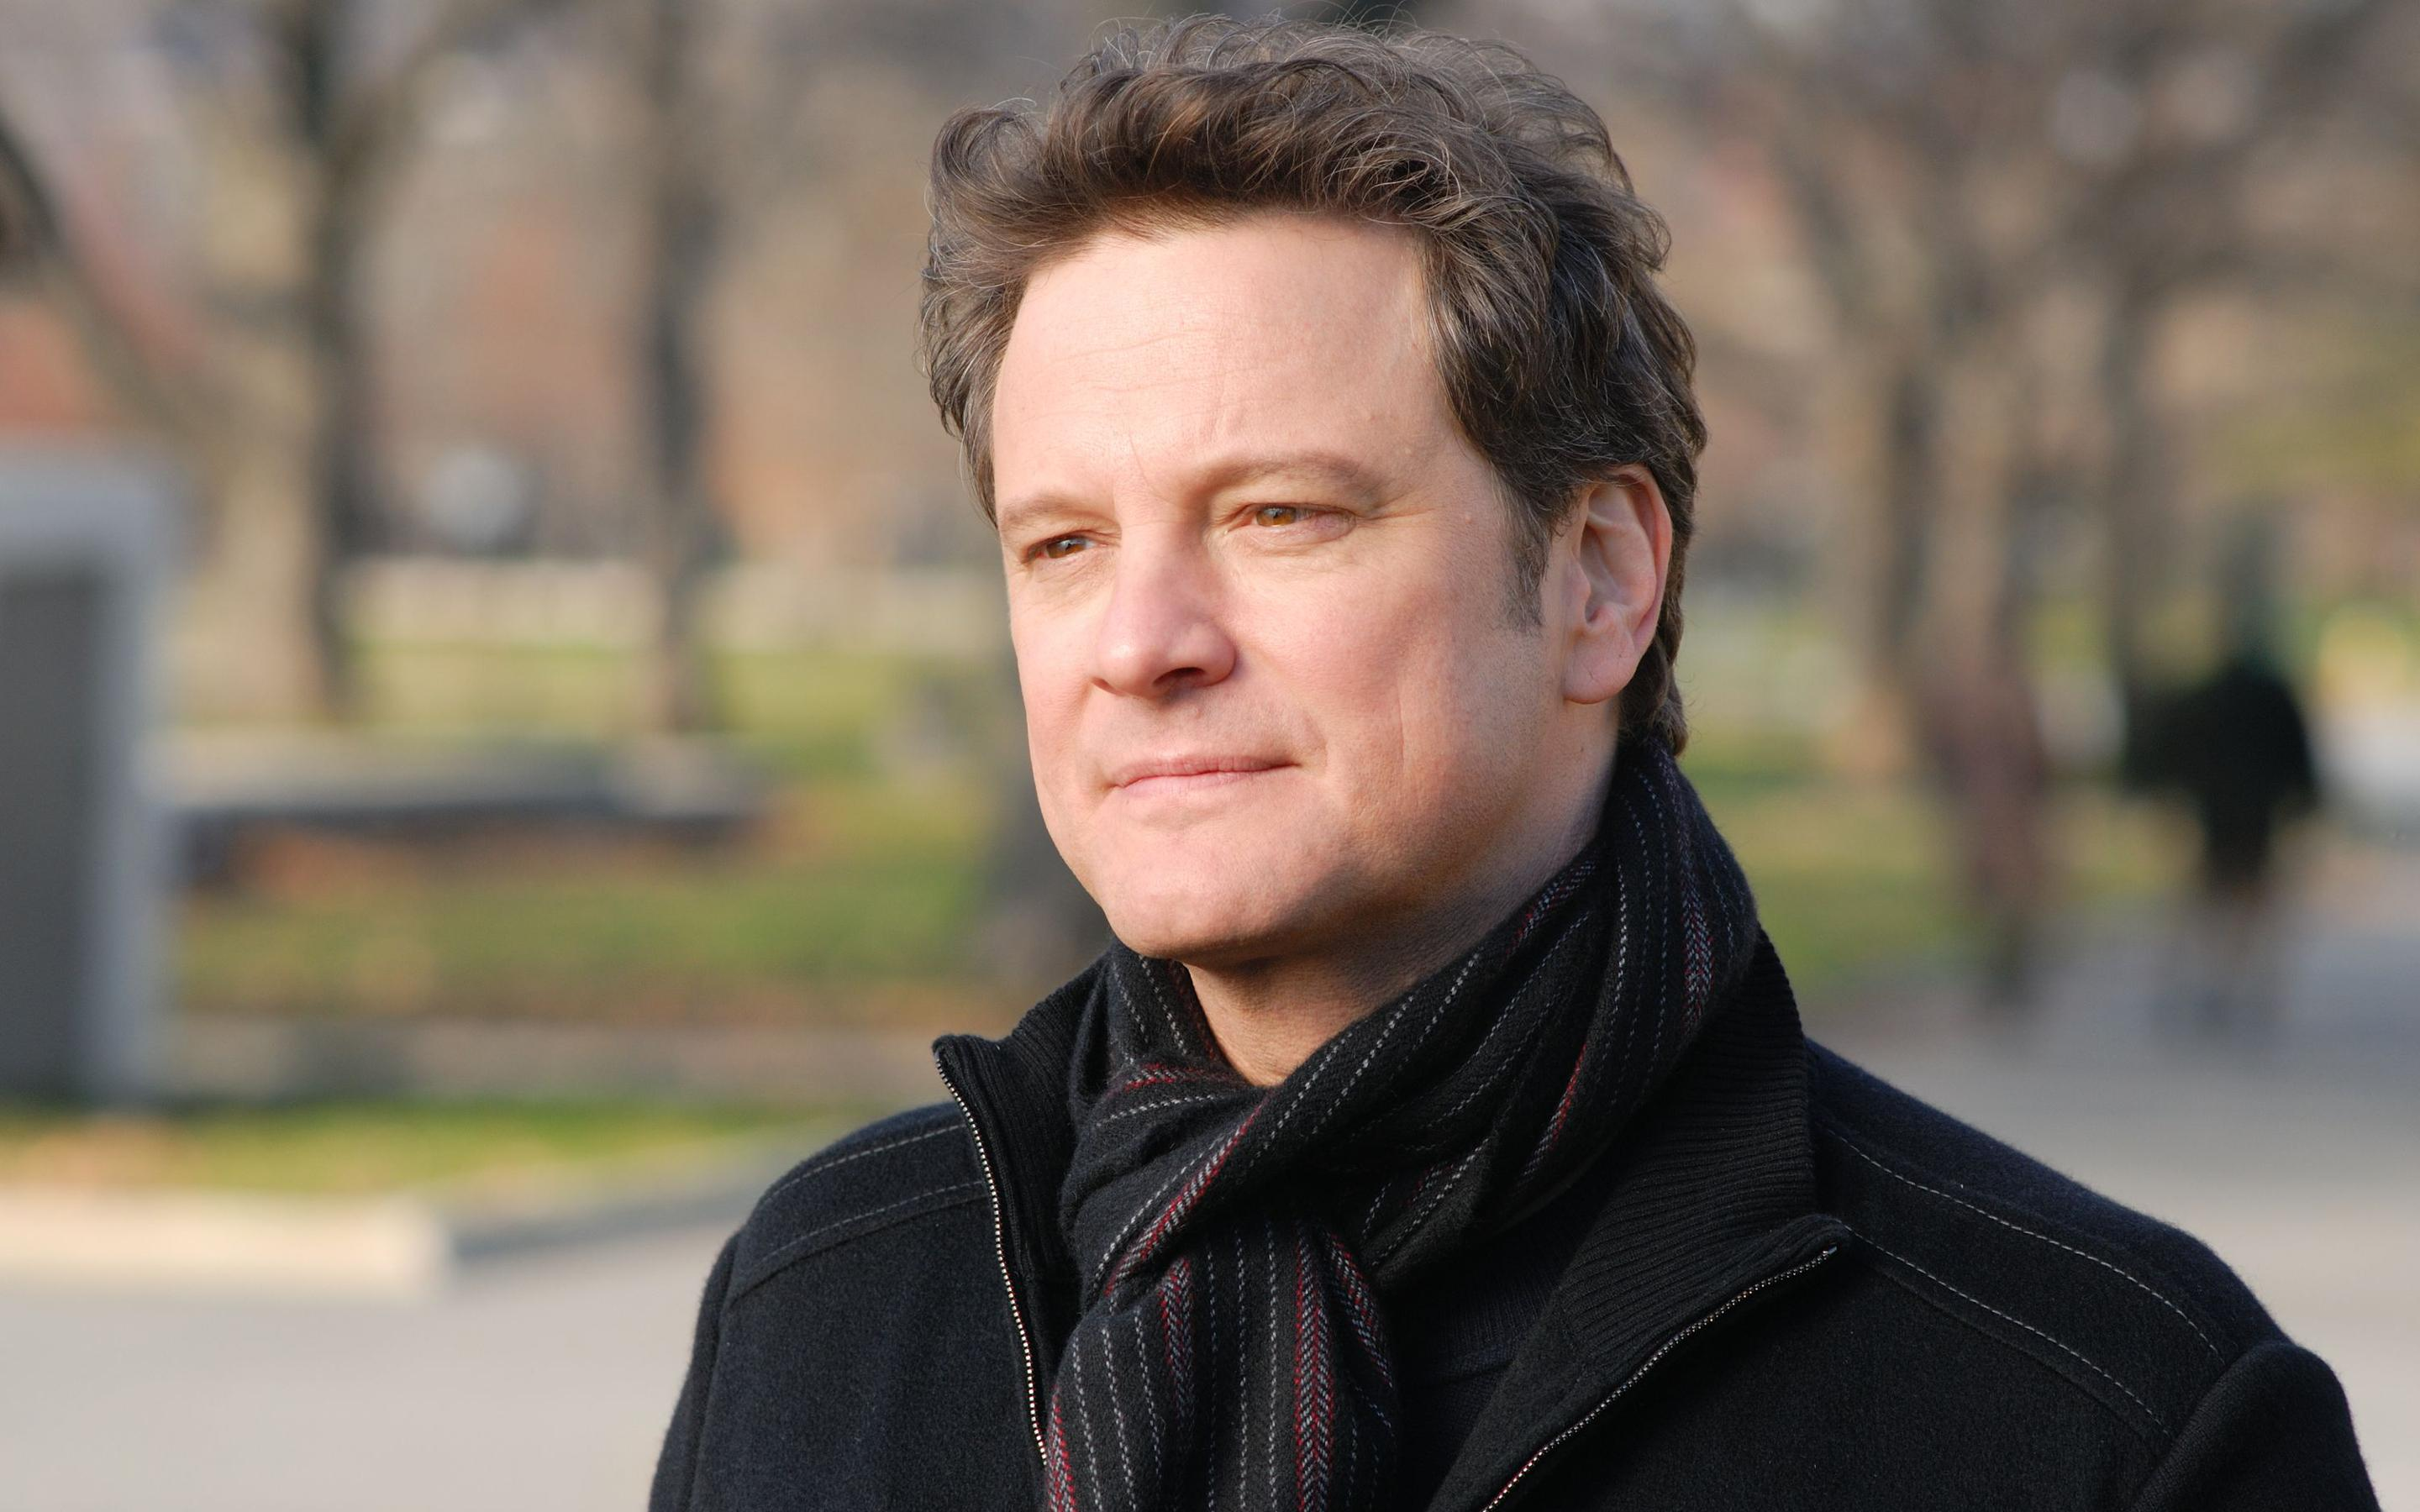 2880x1800 - Colin Firth Wallpapers 22